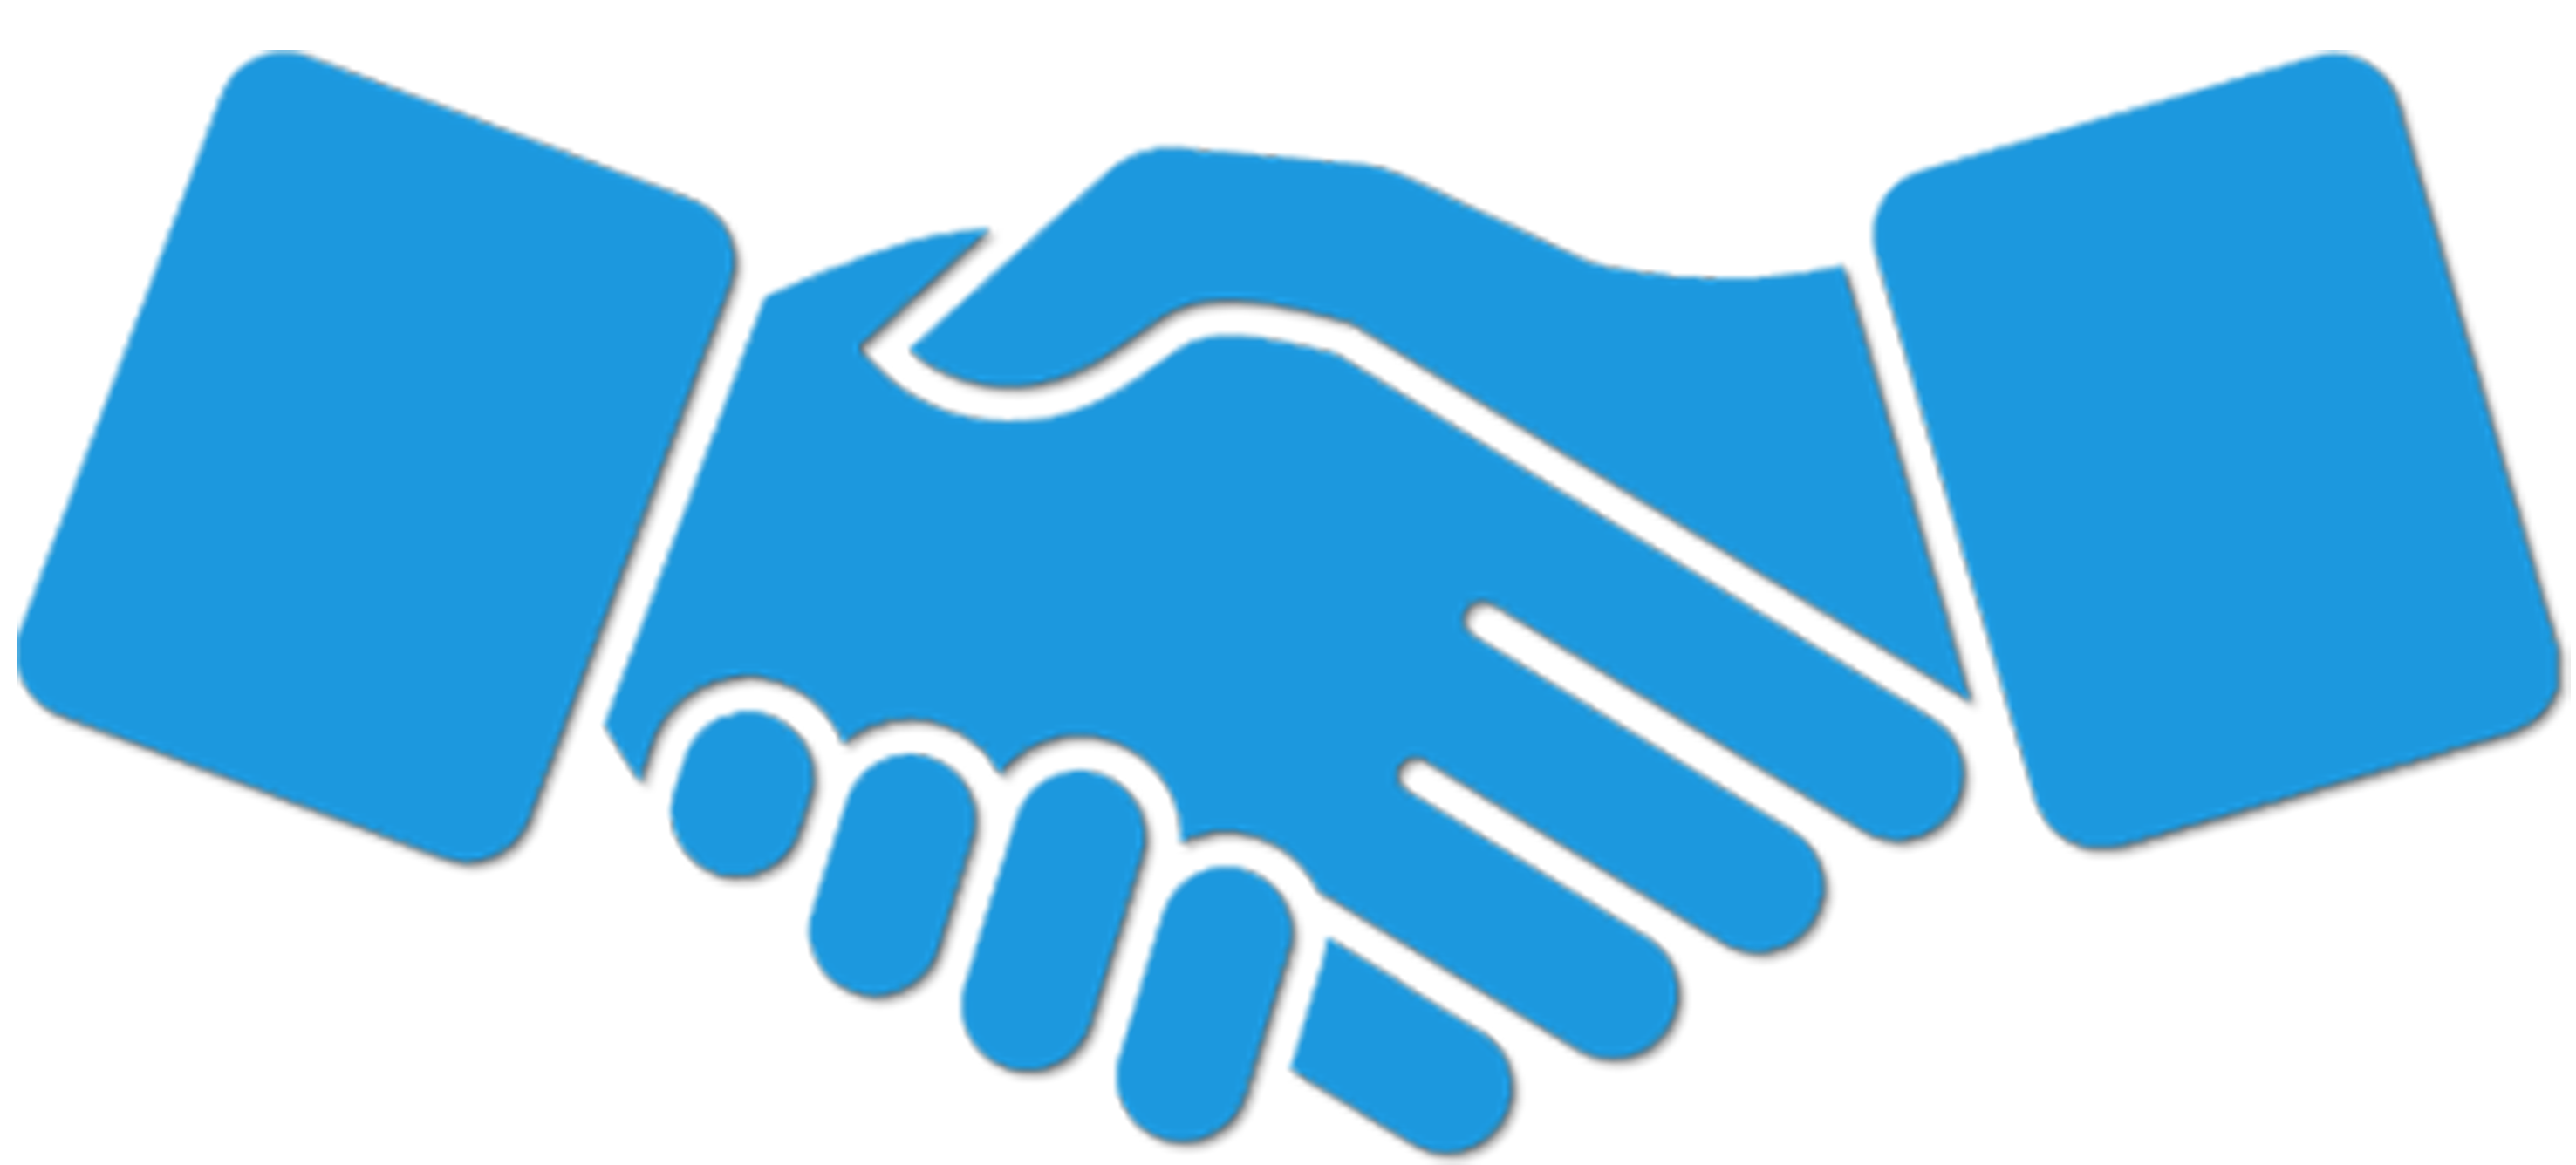 Handshake clipart trust. Computer icons clip art